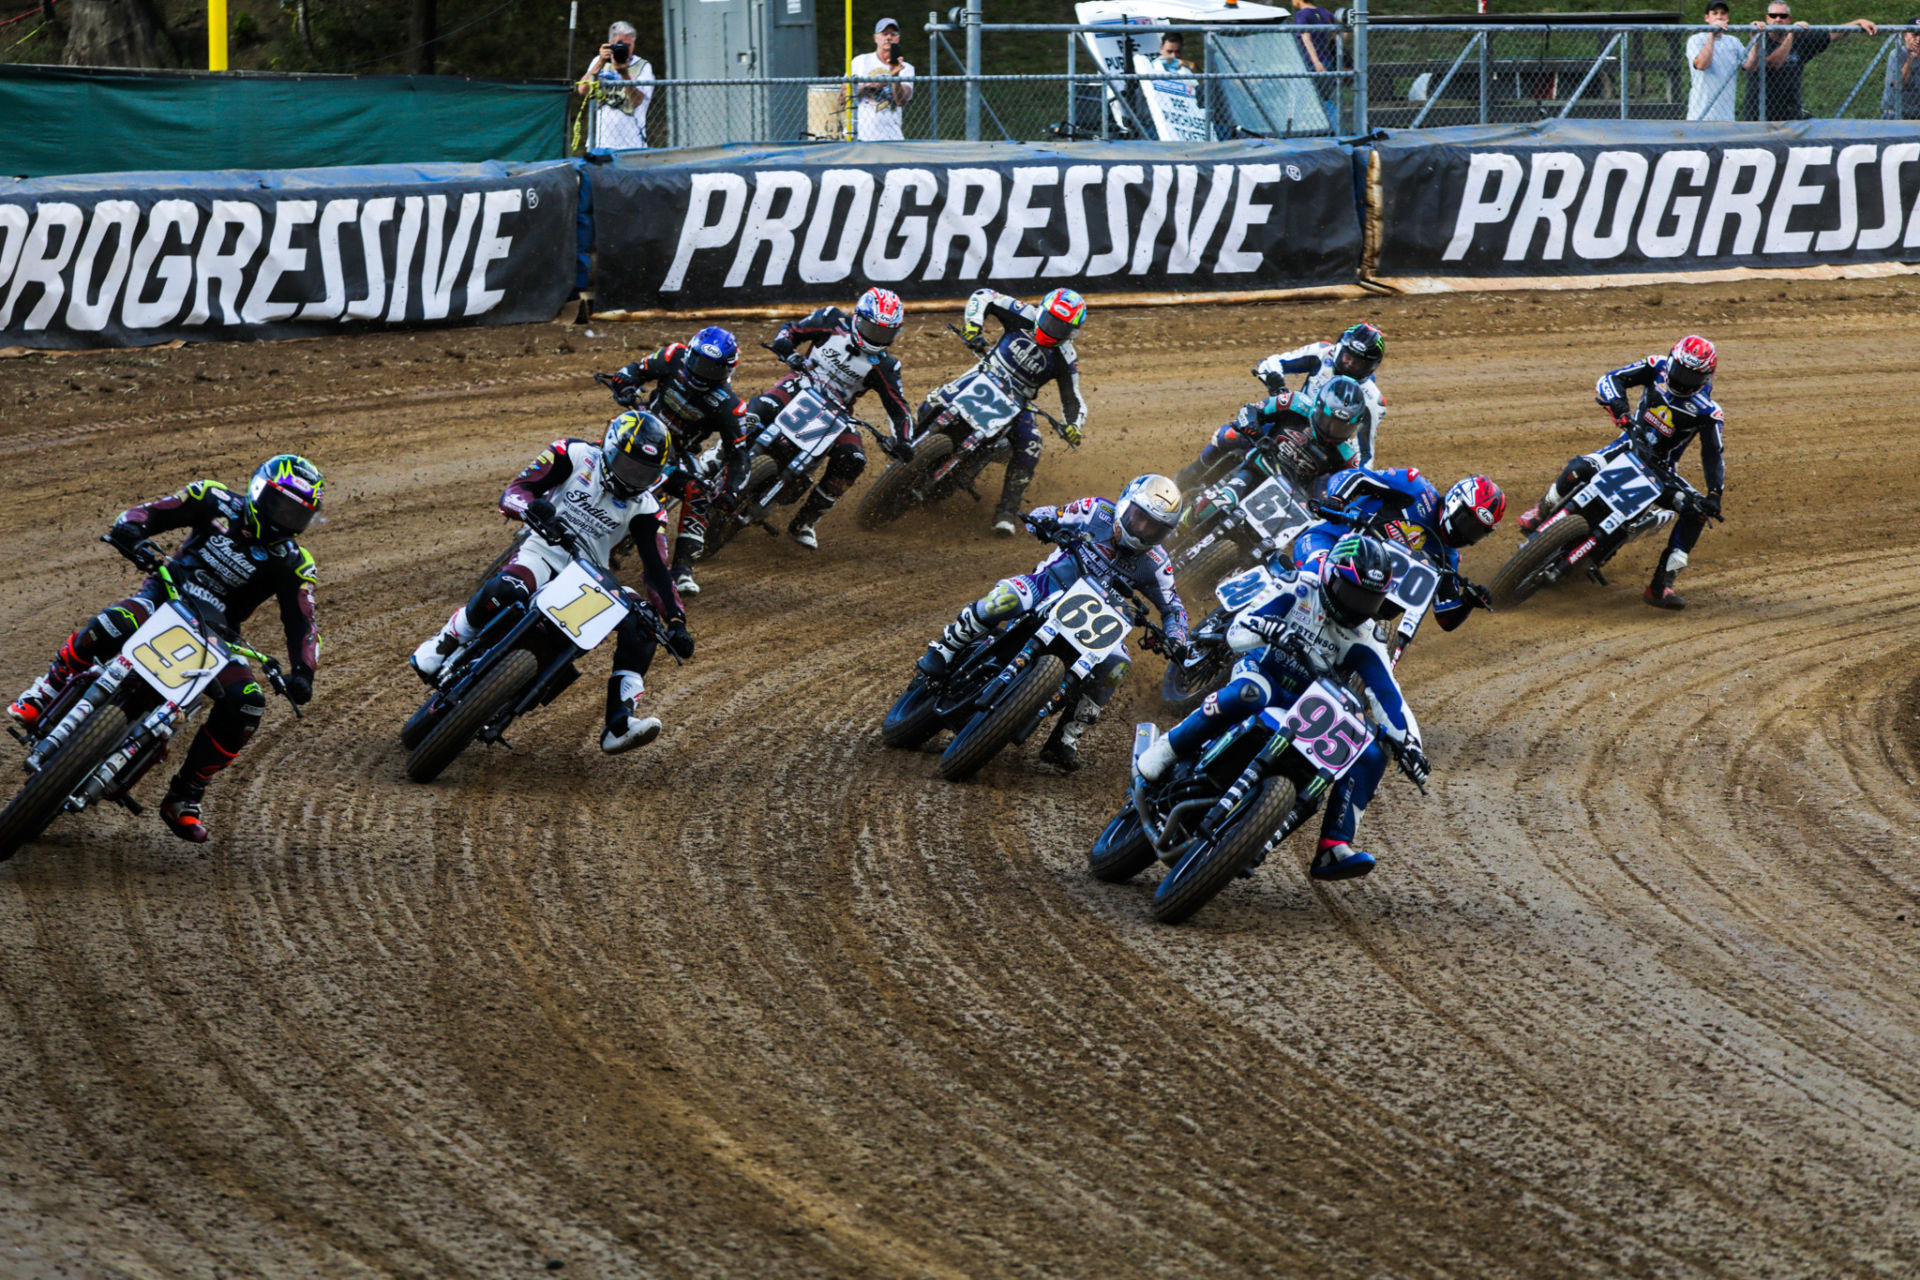 Jared Mees (9), Briar Bauman (1), Sammy Halbert (69), JD Beach (95) and the rest of the AFT SuperTwins field at the start of the main event at the Peoria TT. Photo by Scott Hunter, courtesy AFT.